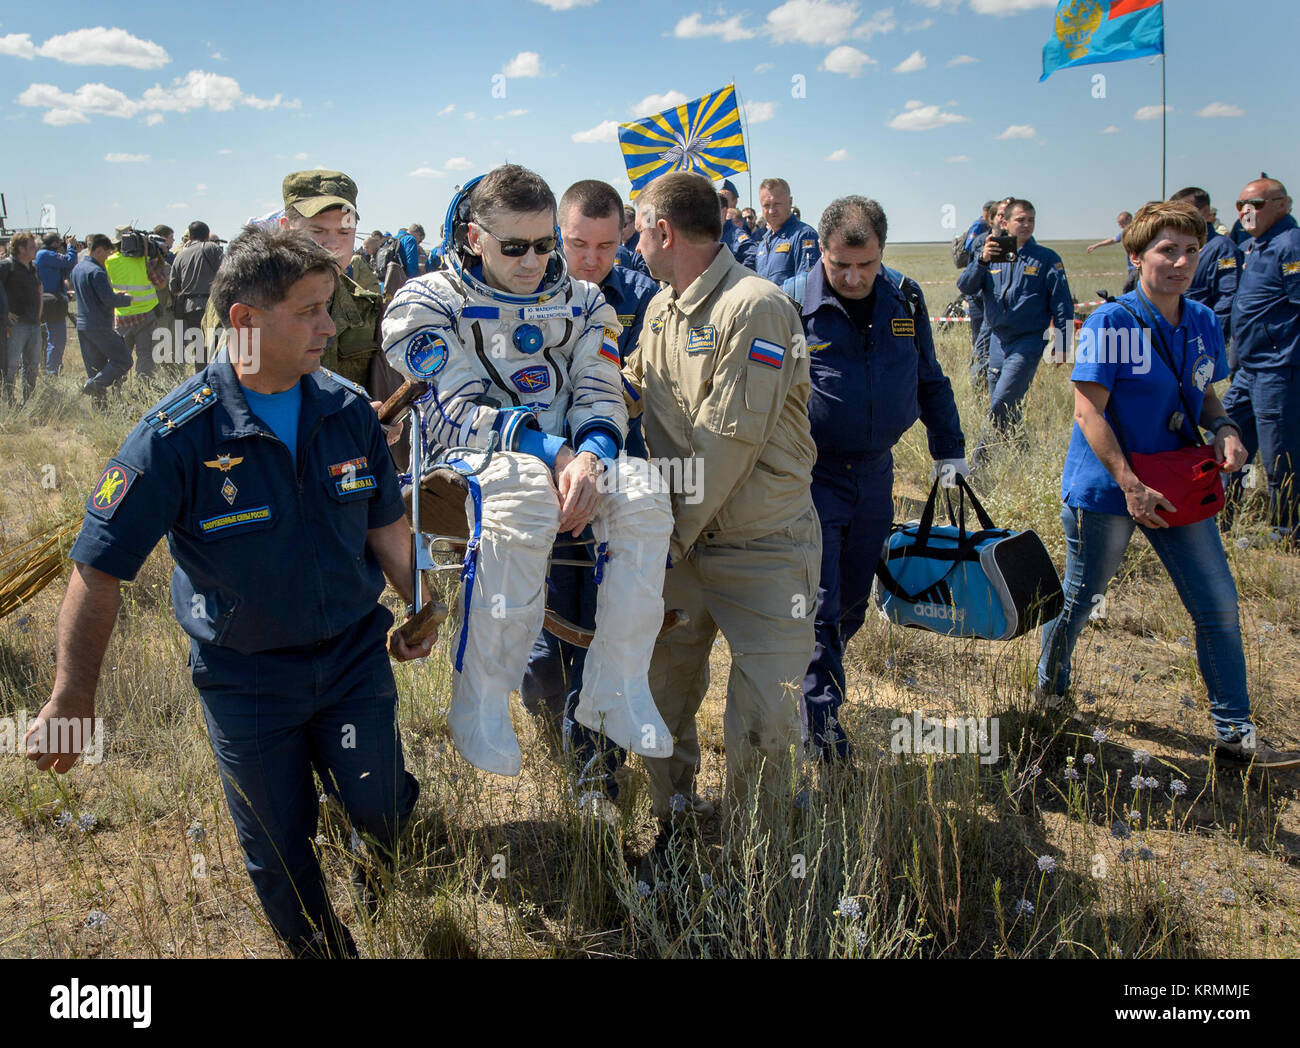 Yuri Malenchenko of Roscosmos is carried to a medical tent after he and Tim Kopra of NASA and Tim Peake of the European - Stock Image